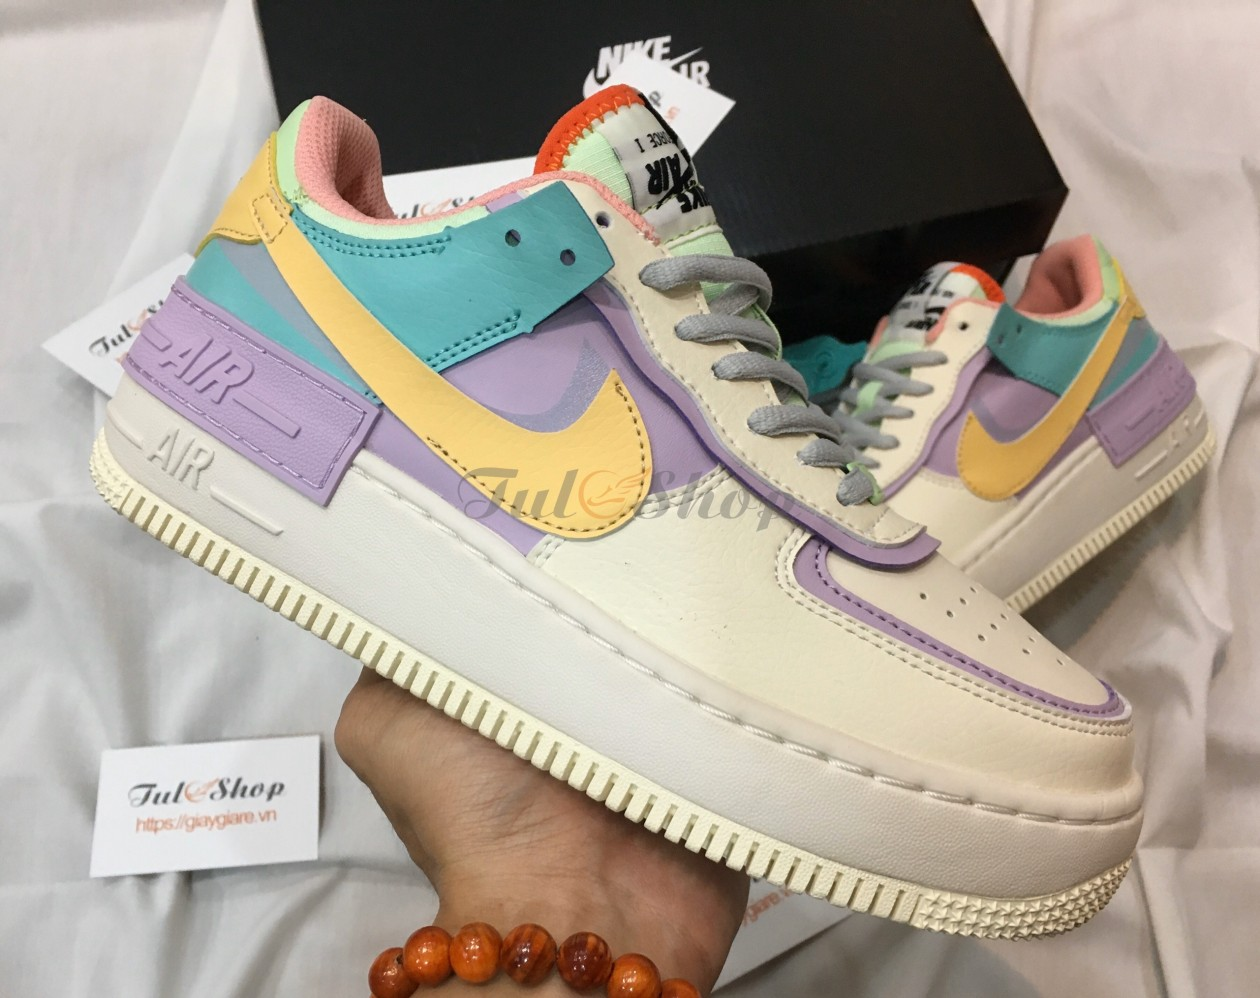 Nike Air Force 1 Shadow Authentic Clearance Shop However, travis scott's attention to detail is exactly how you can tell a real cactus jack from fake one. oasis md